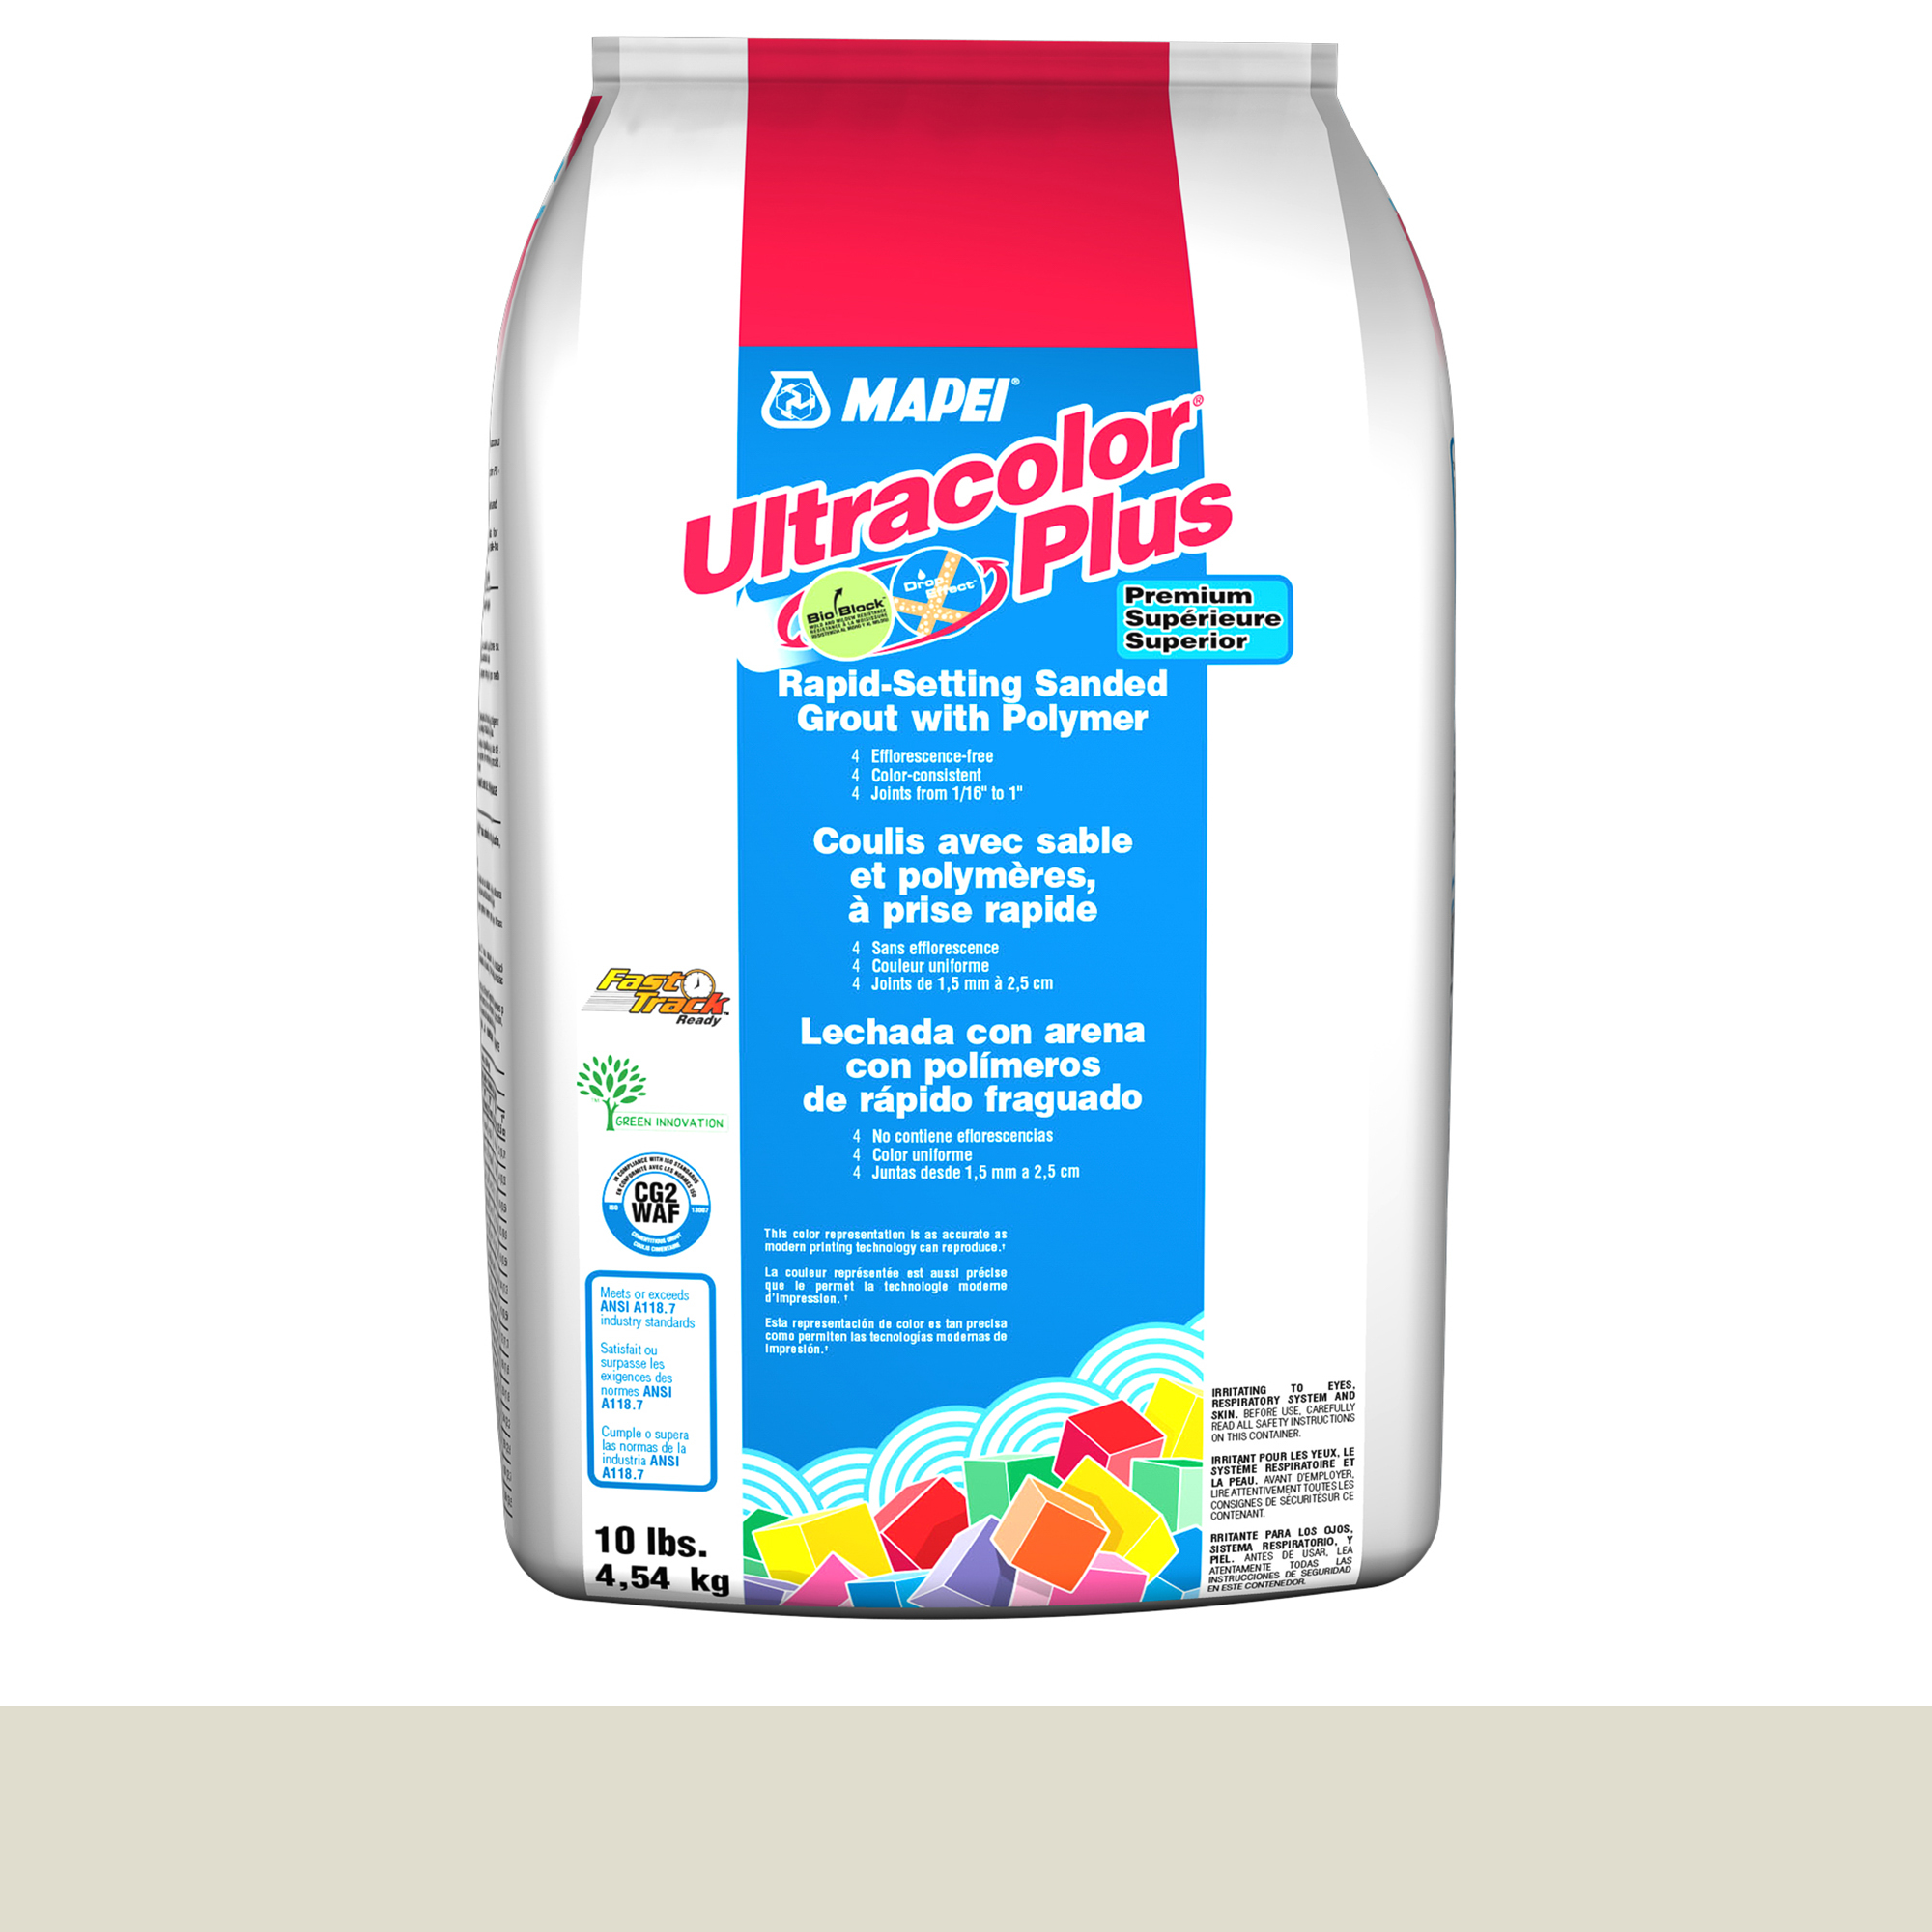 Mapei Ultracolor Plus Fa 14-Biscuit 10-Lb Bag Grout Sanded product photo